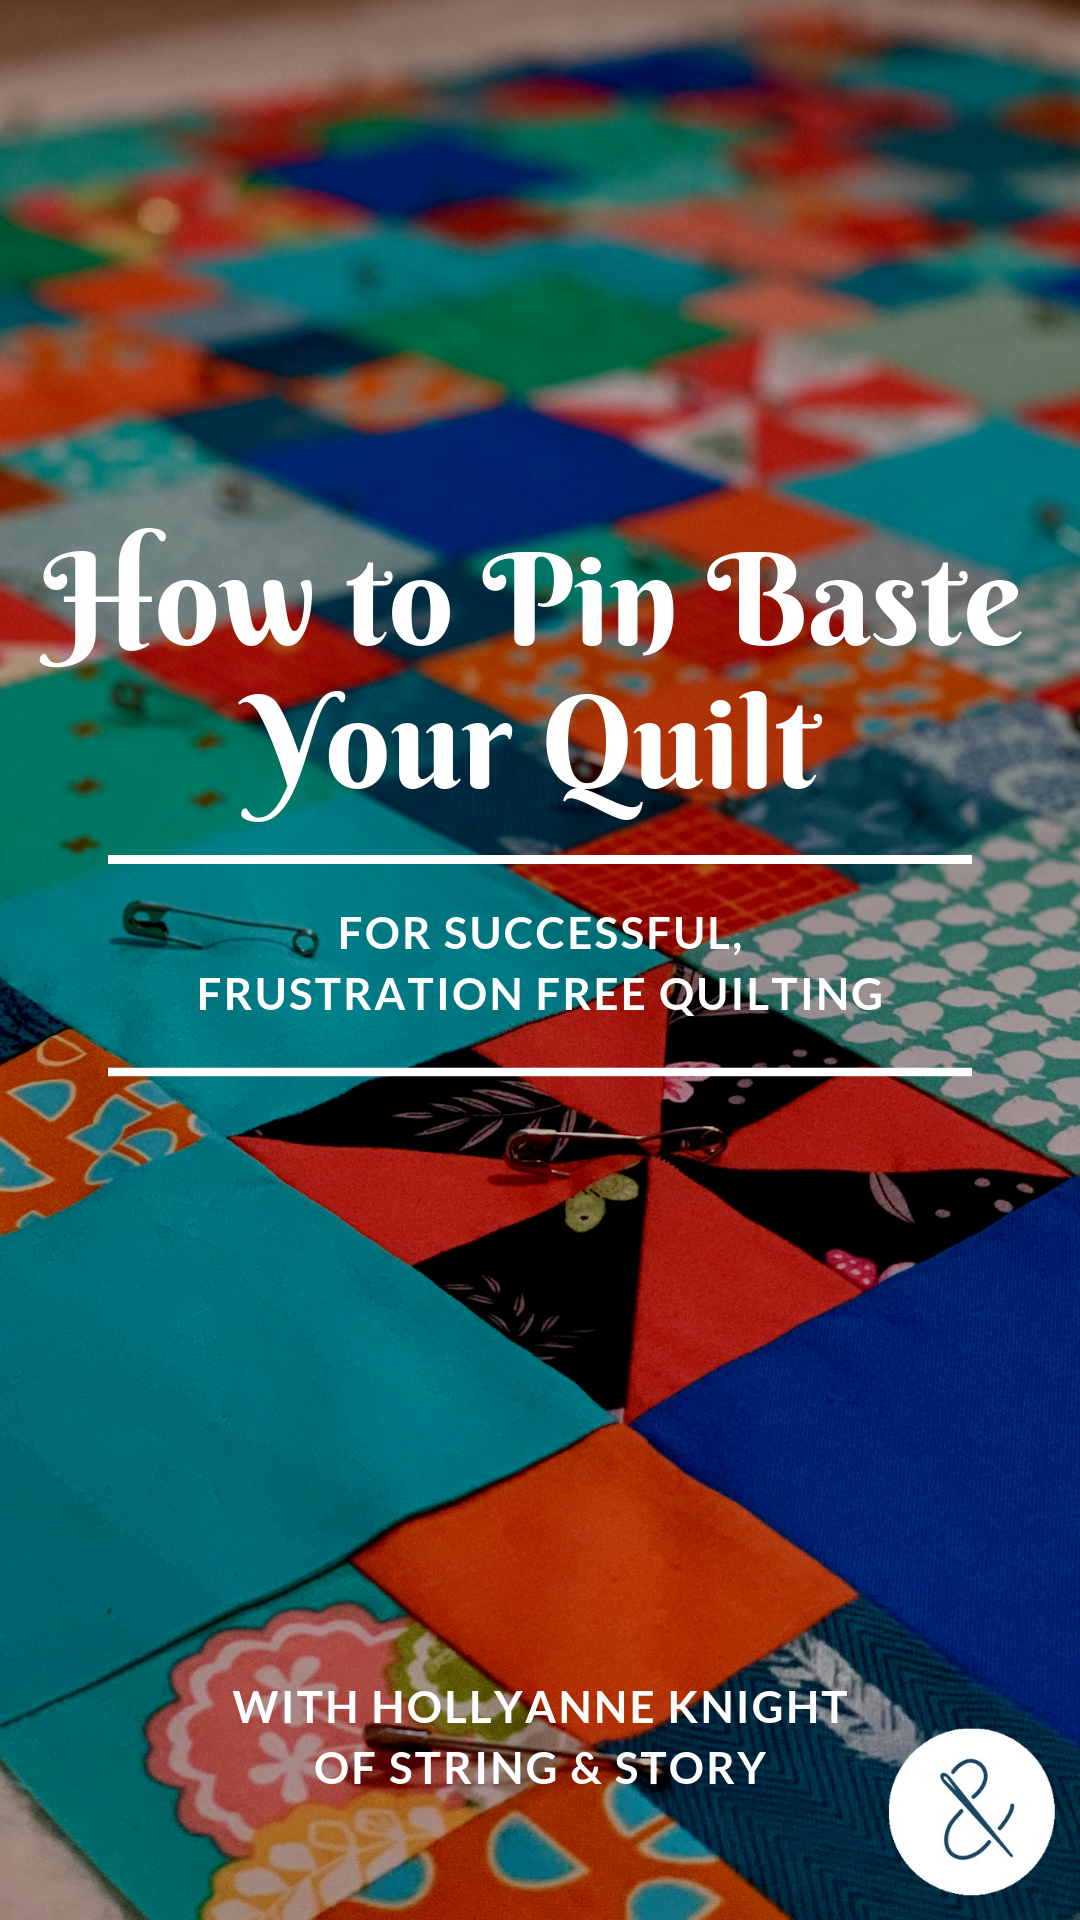 Getting all three layers of a quilt smooth can be a challenge for any quilter. Join me as I show you how to do basic pin basting so that you can quilt with confidence!